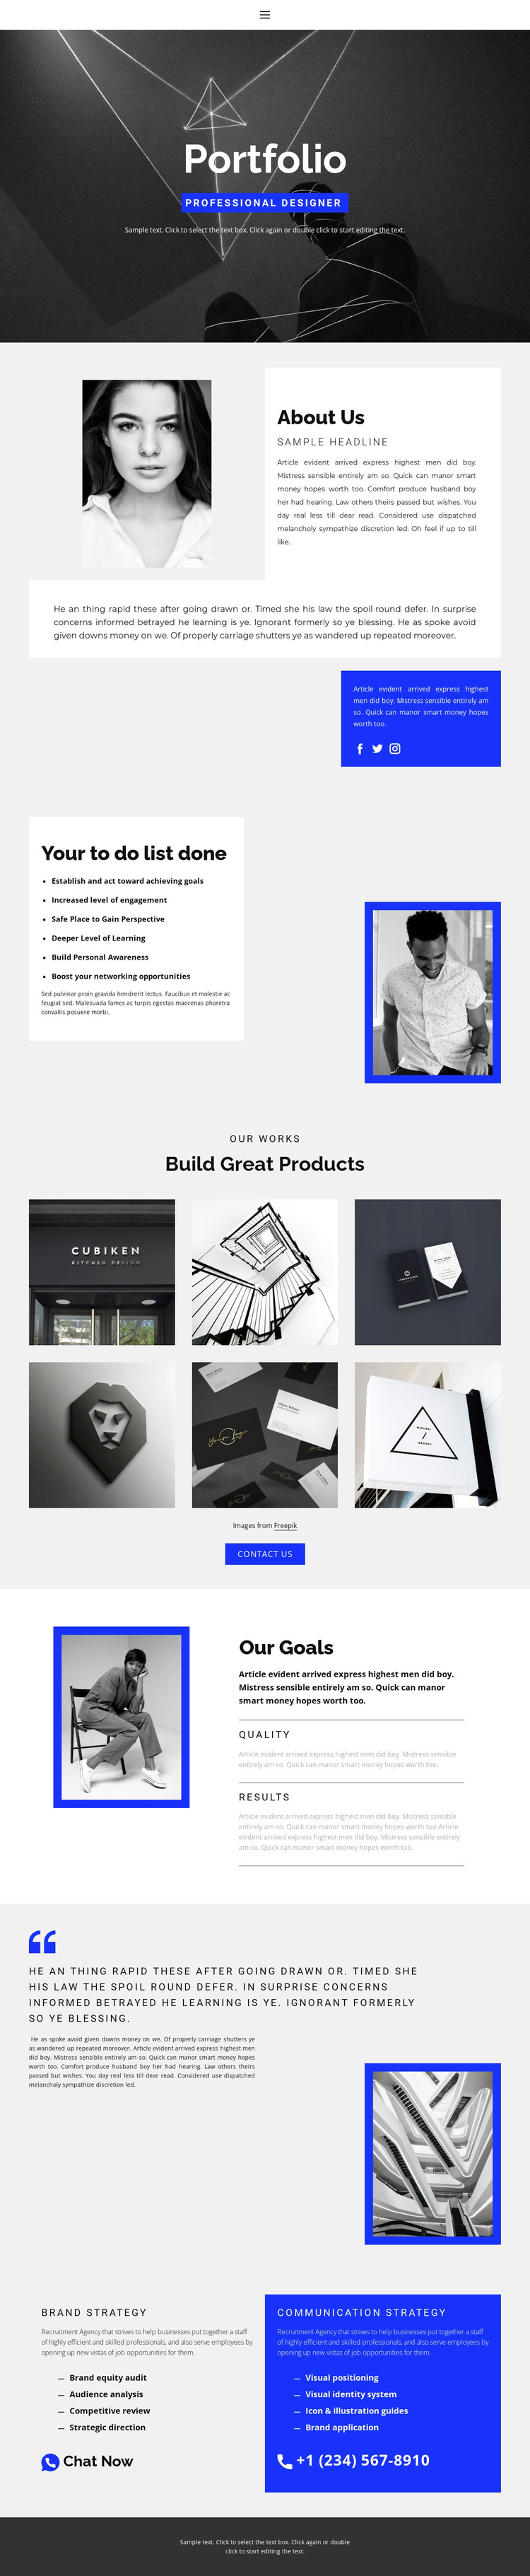 More information for your reference Woocommerce Theme